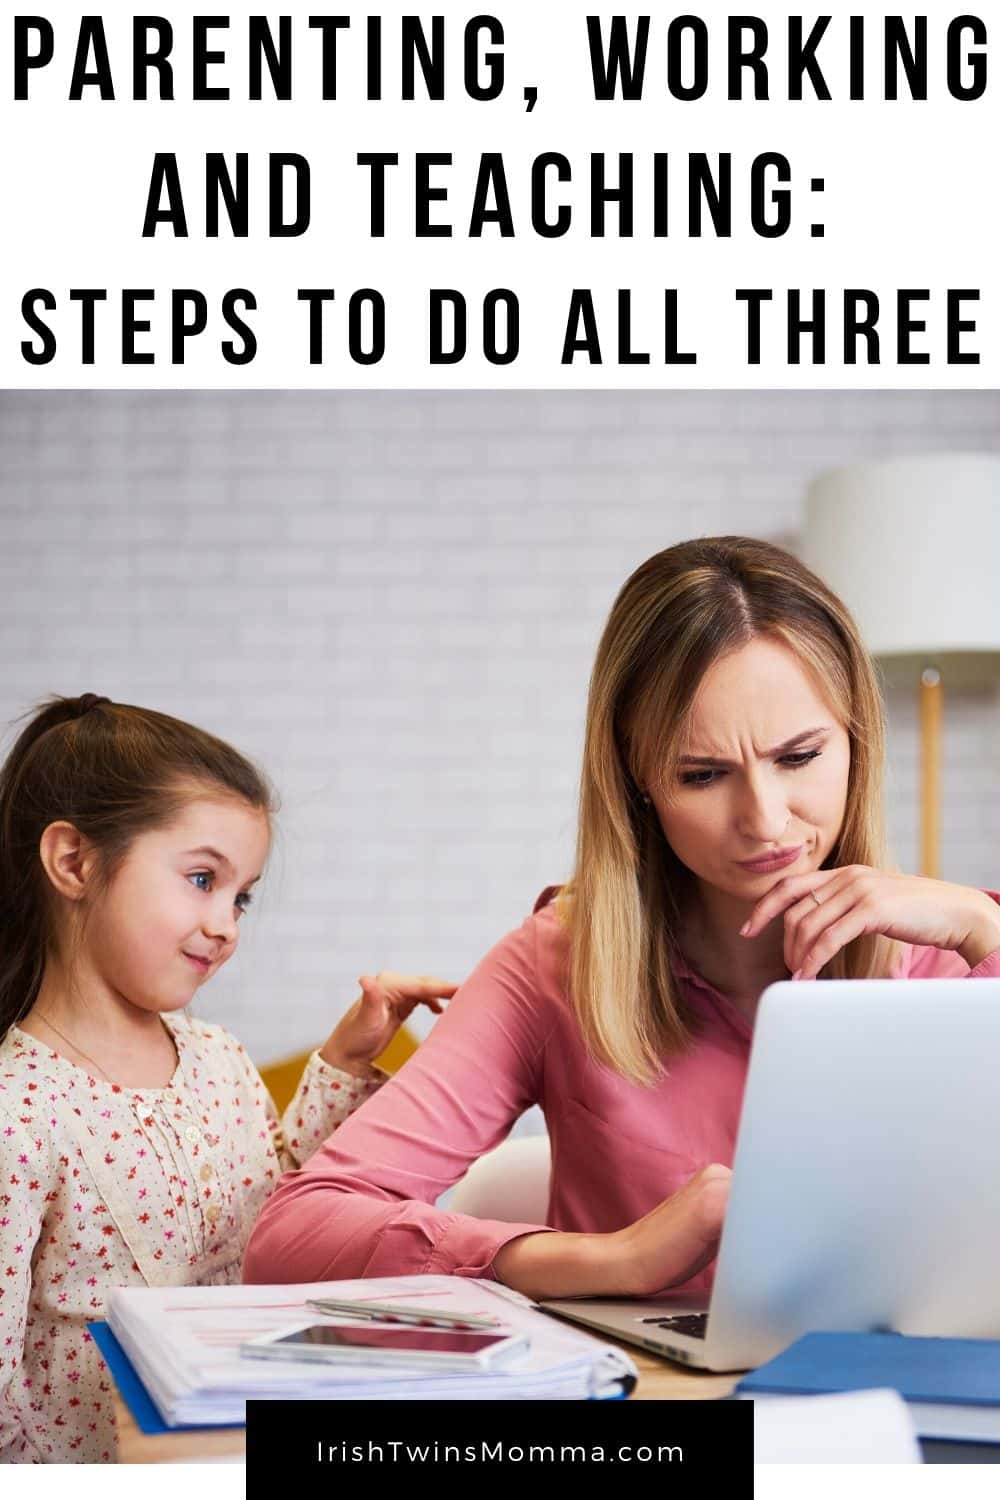 If you're trying to find the right balance in this unprecedented situation, there are some tips you can follow. Here, we'll look at some of the steps you can take to accomplish your new role without losing your sanity. via @irishtwinsmom11